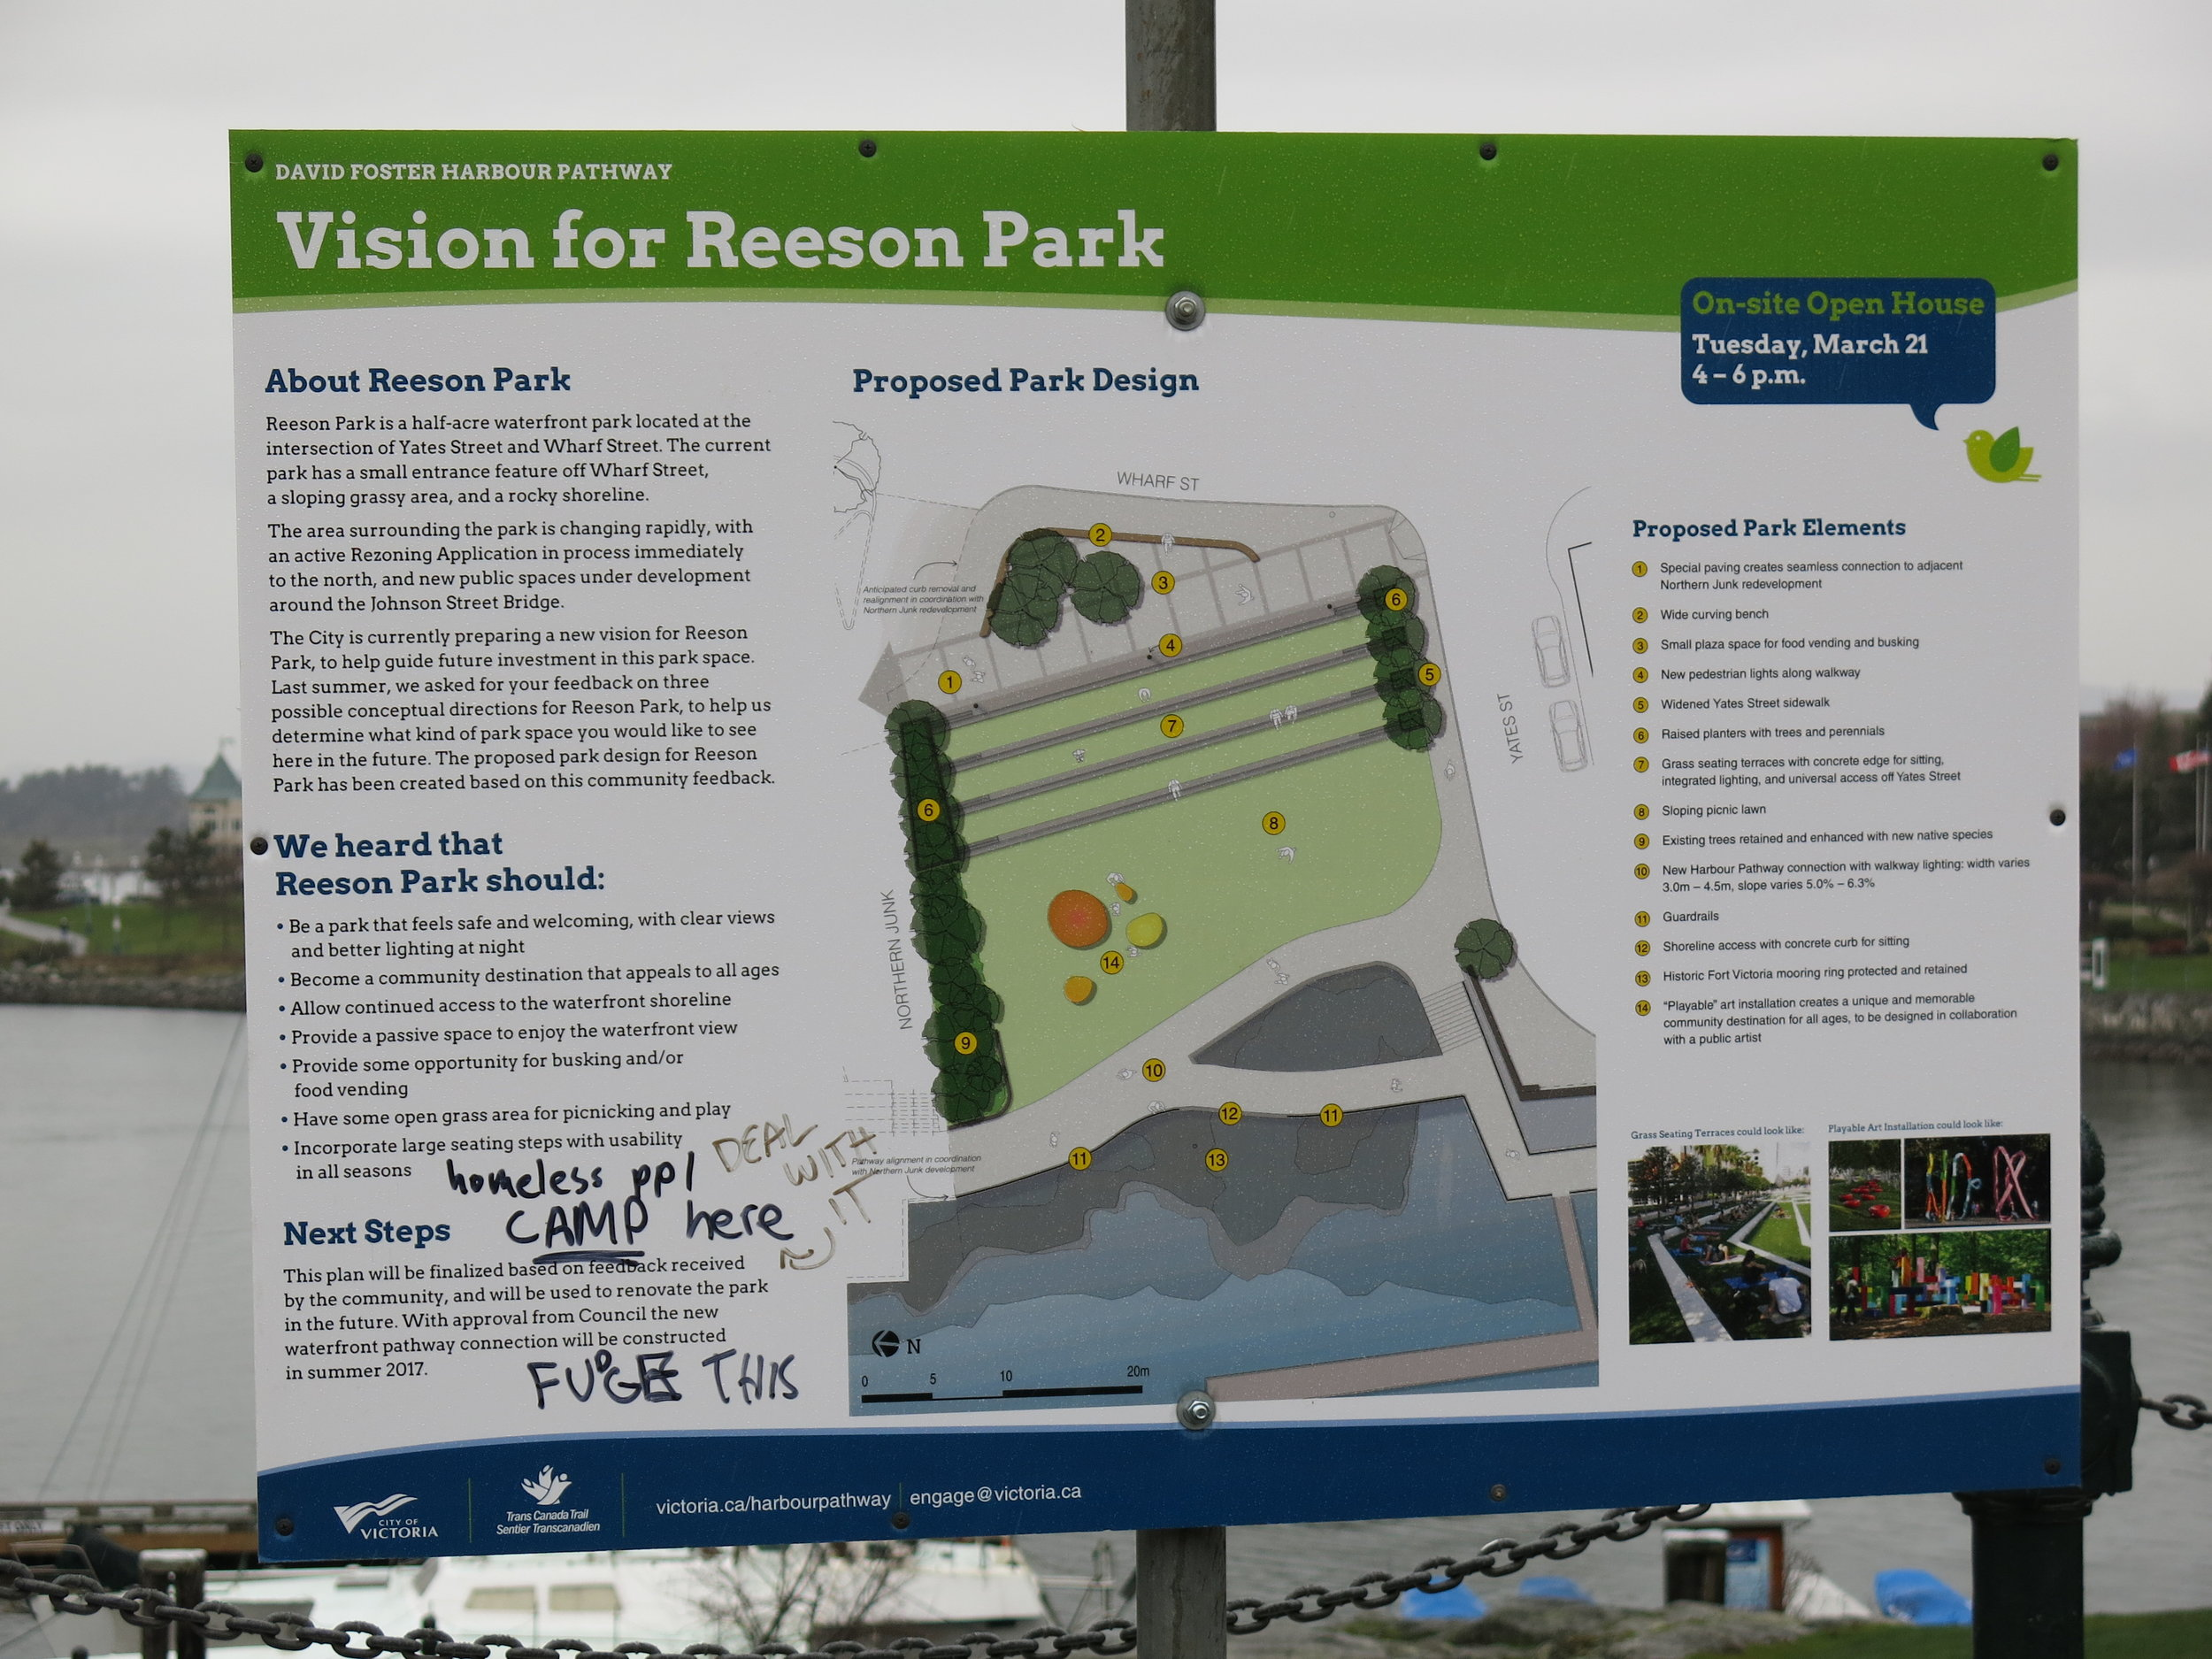 The latest feedback on the Reeson Park plan, Pt. 2